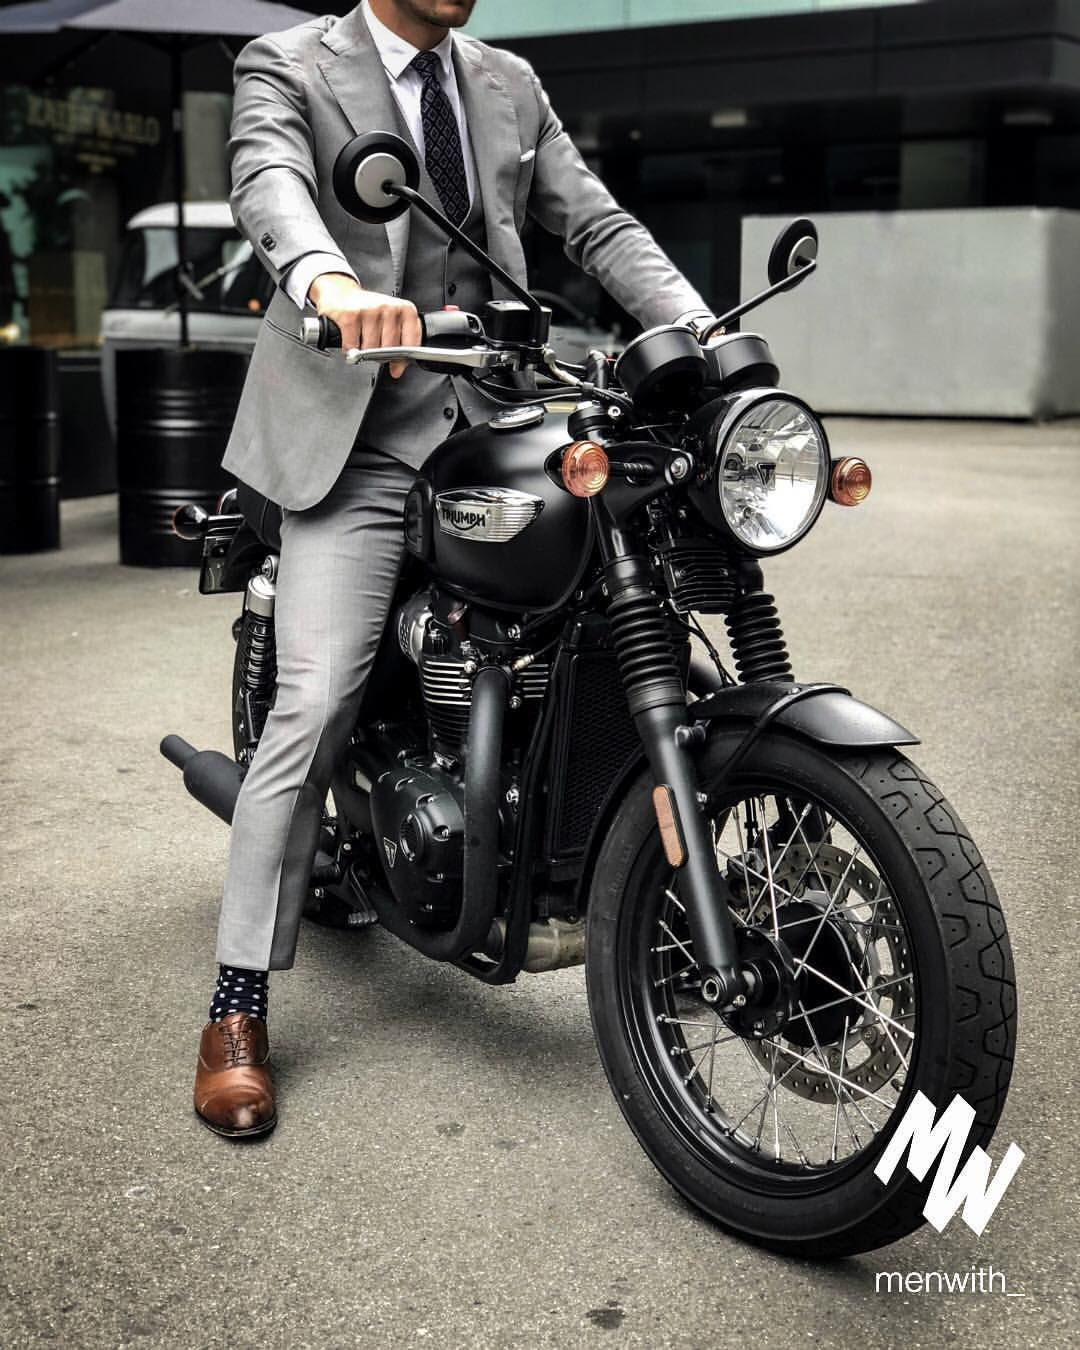 Pin by Rayan Sattar on Cars Motorcycle hairstyles